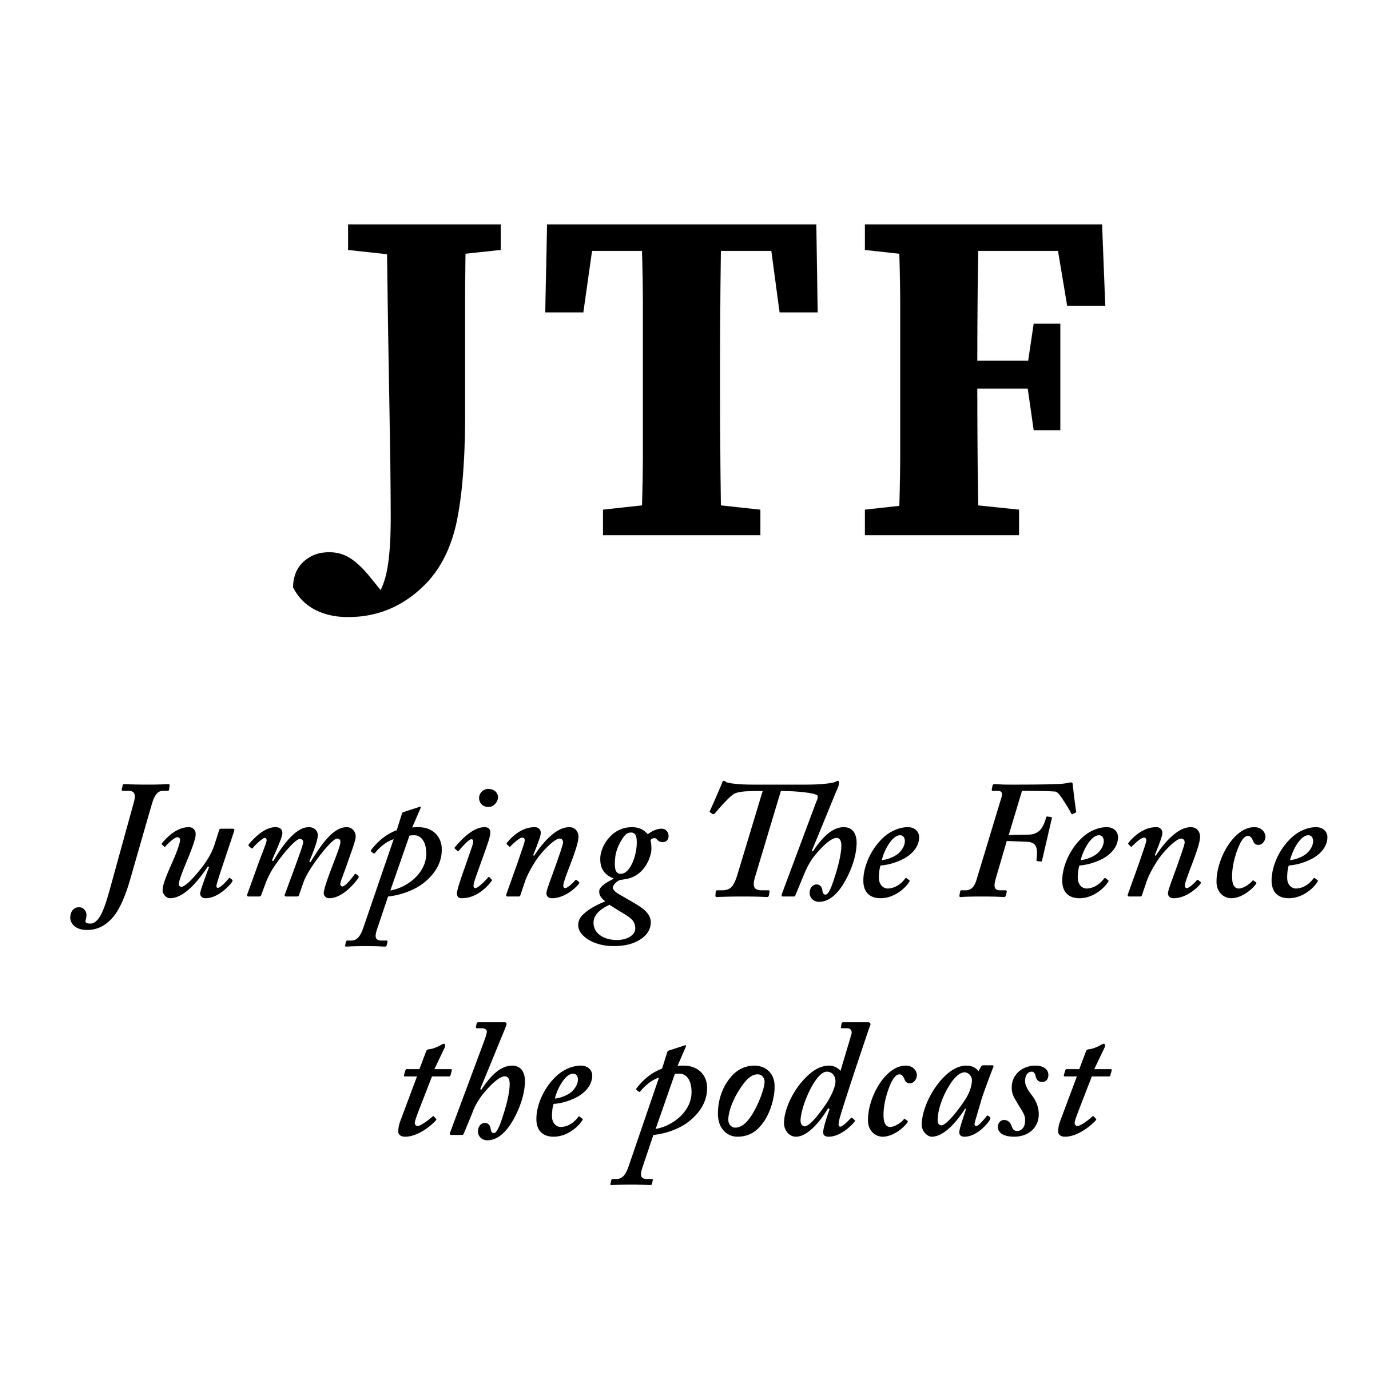 Jumping The Fence Podcast